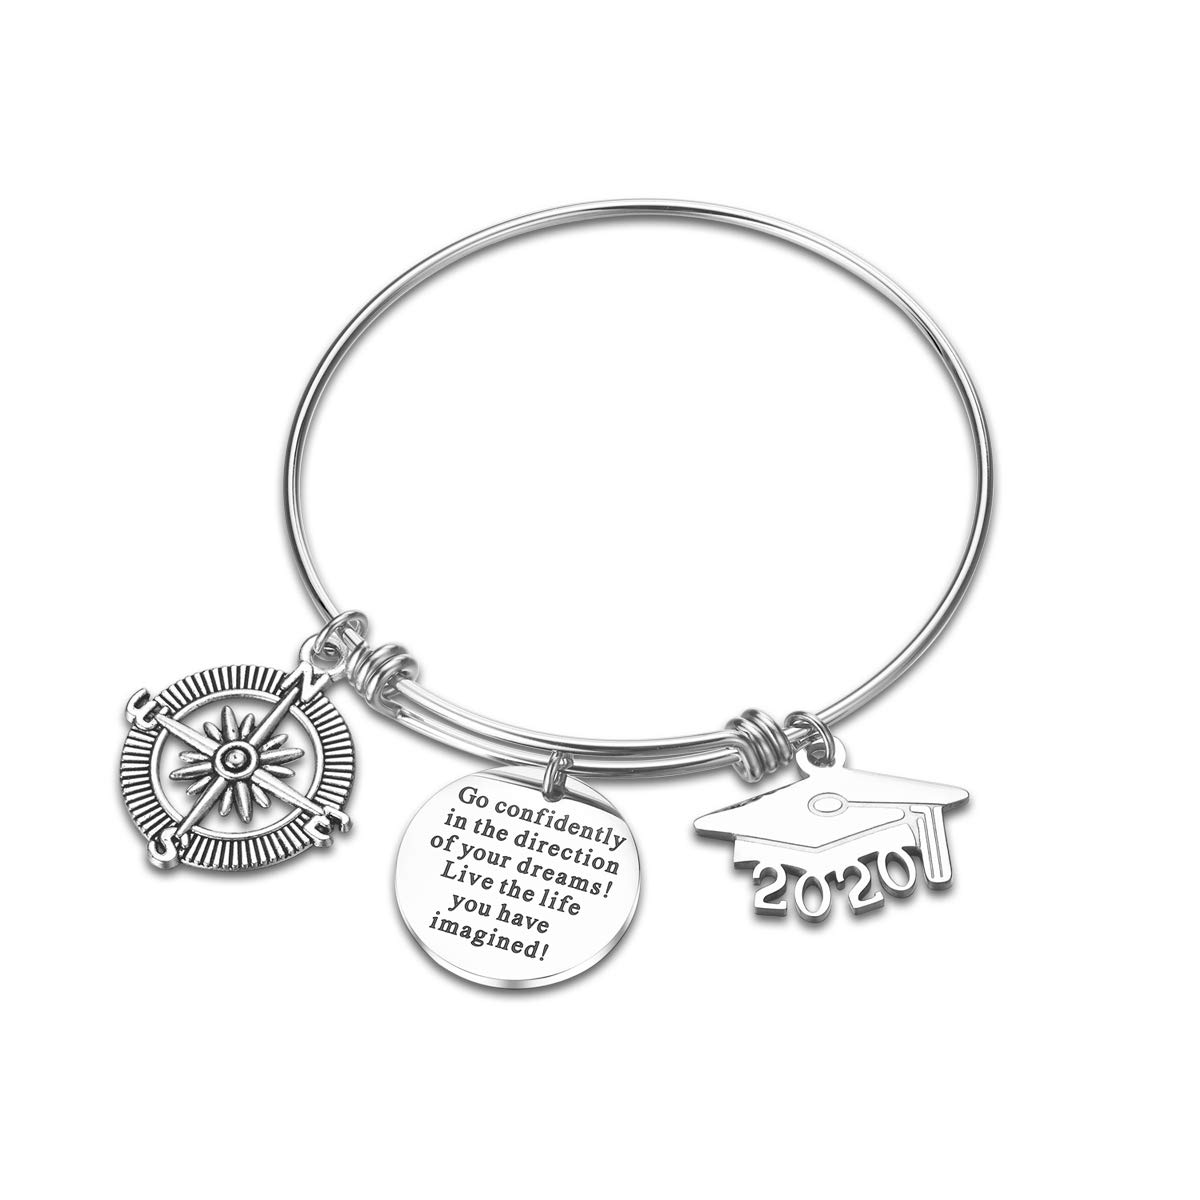 Class of 2020 Graduation Gift Graduation Cap Bangle Bracelet Compass Expandable Bracelet Inspirational Jewelry for Women She Believed She Could So She Did